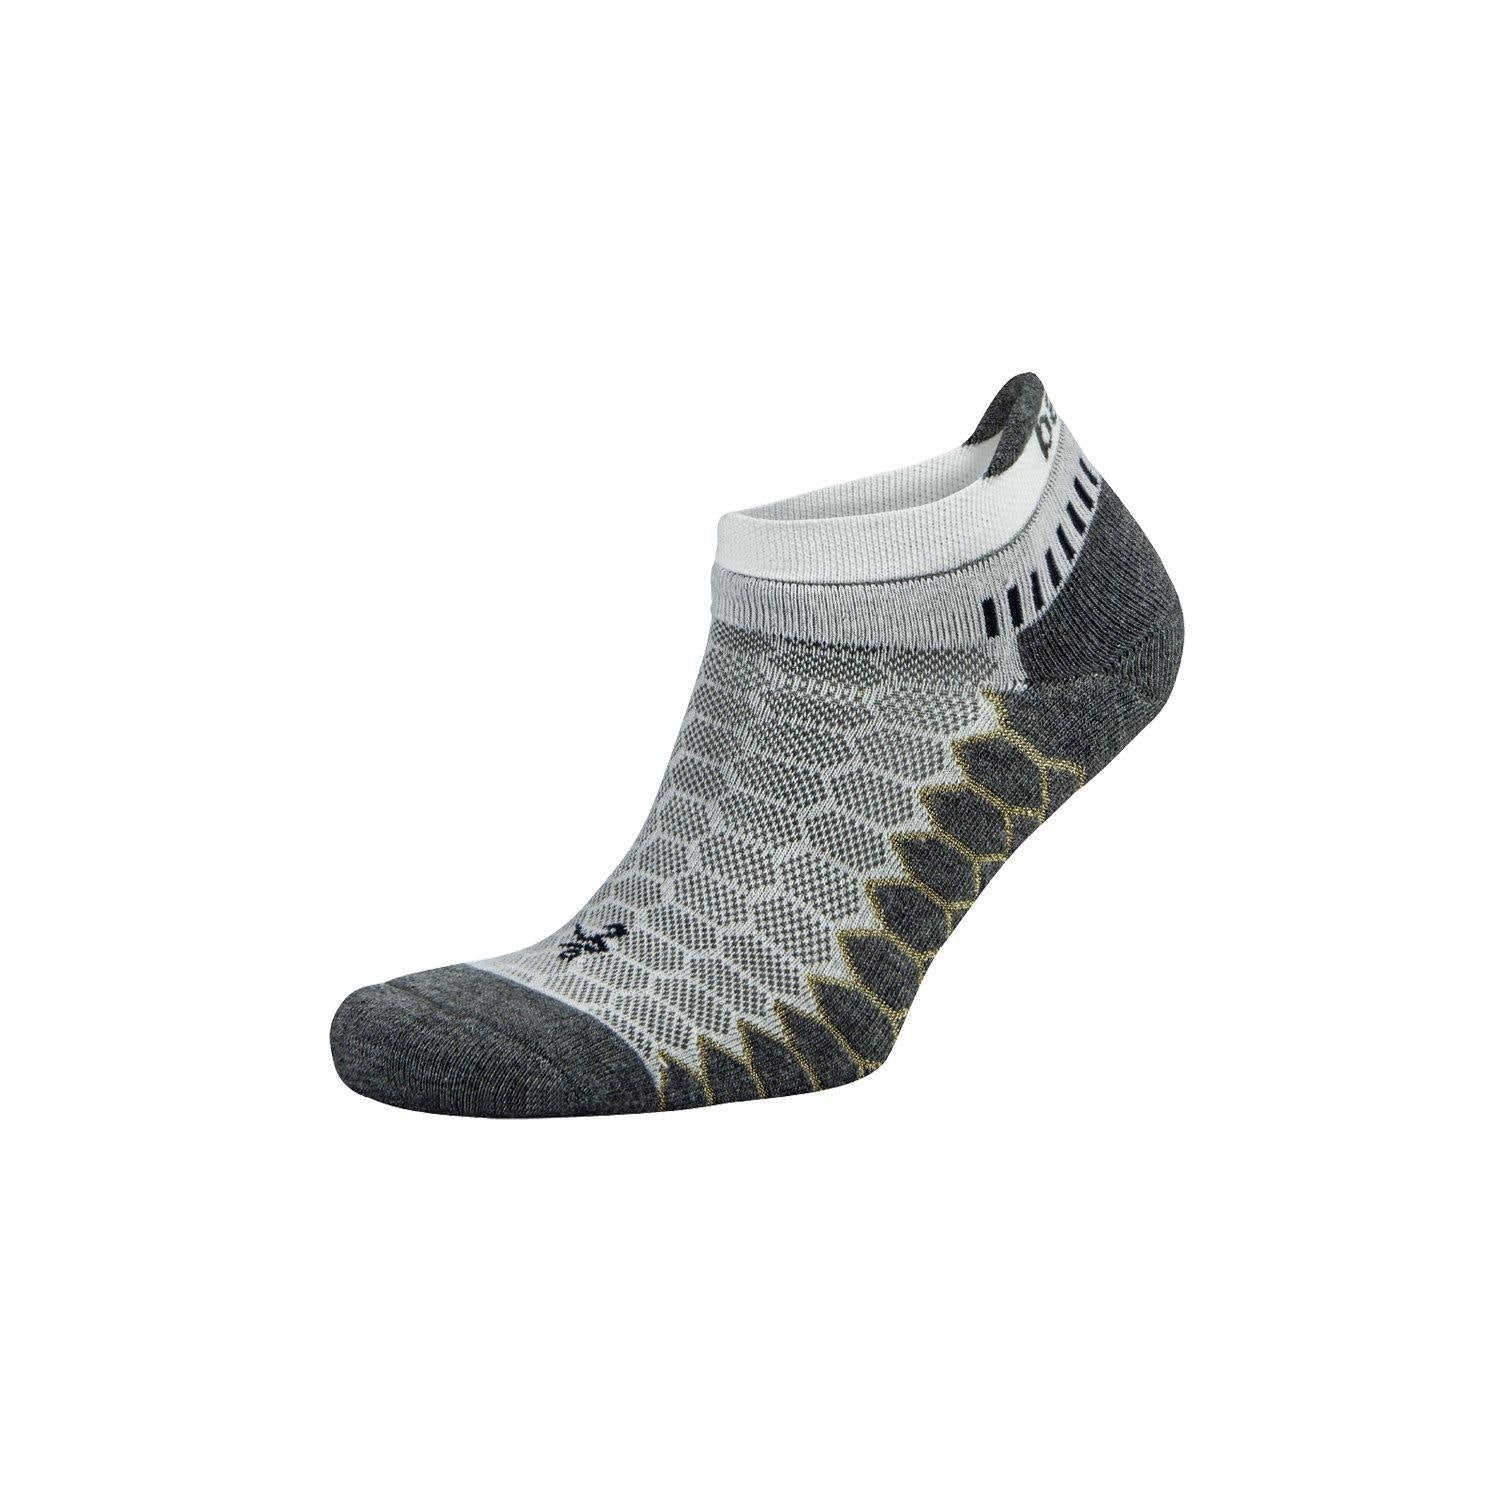 Balega Silver No Show Socks - White/Grey